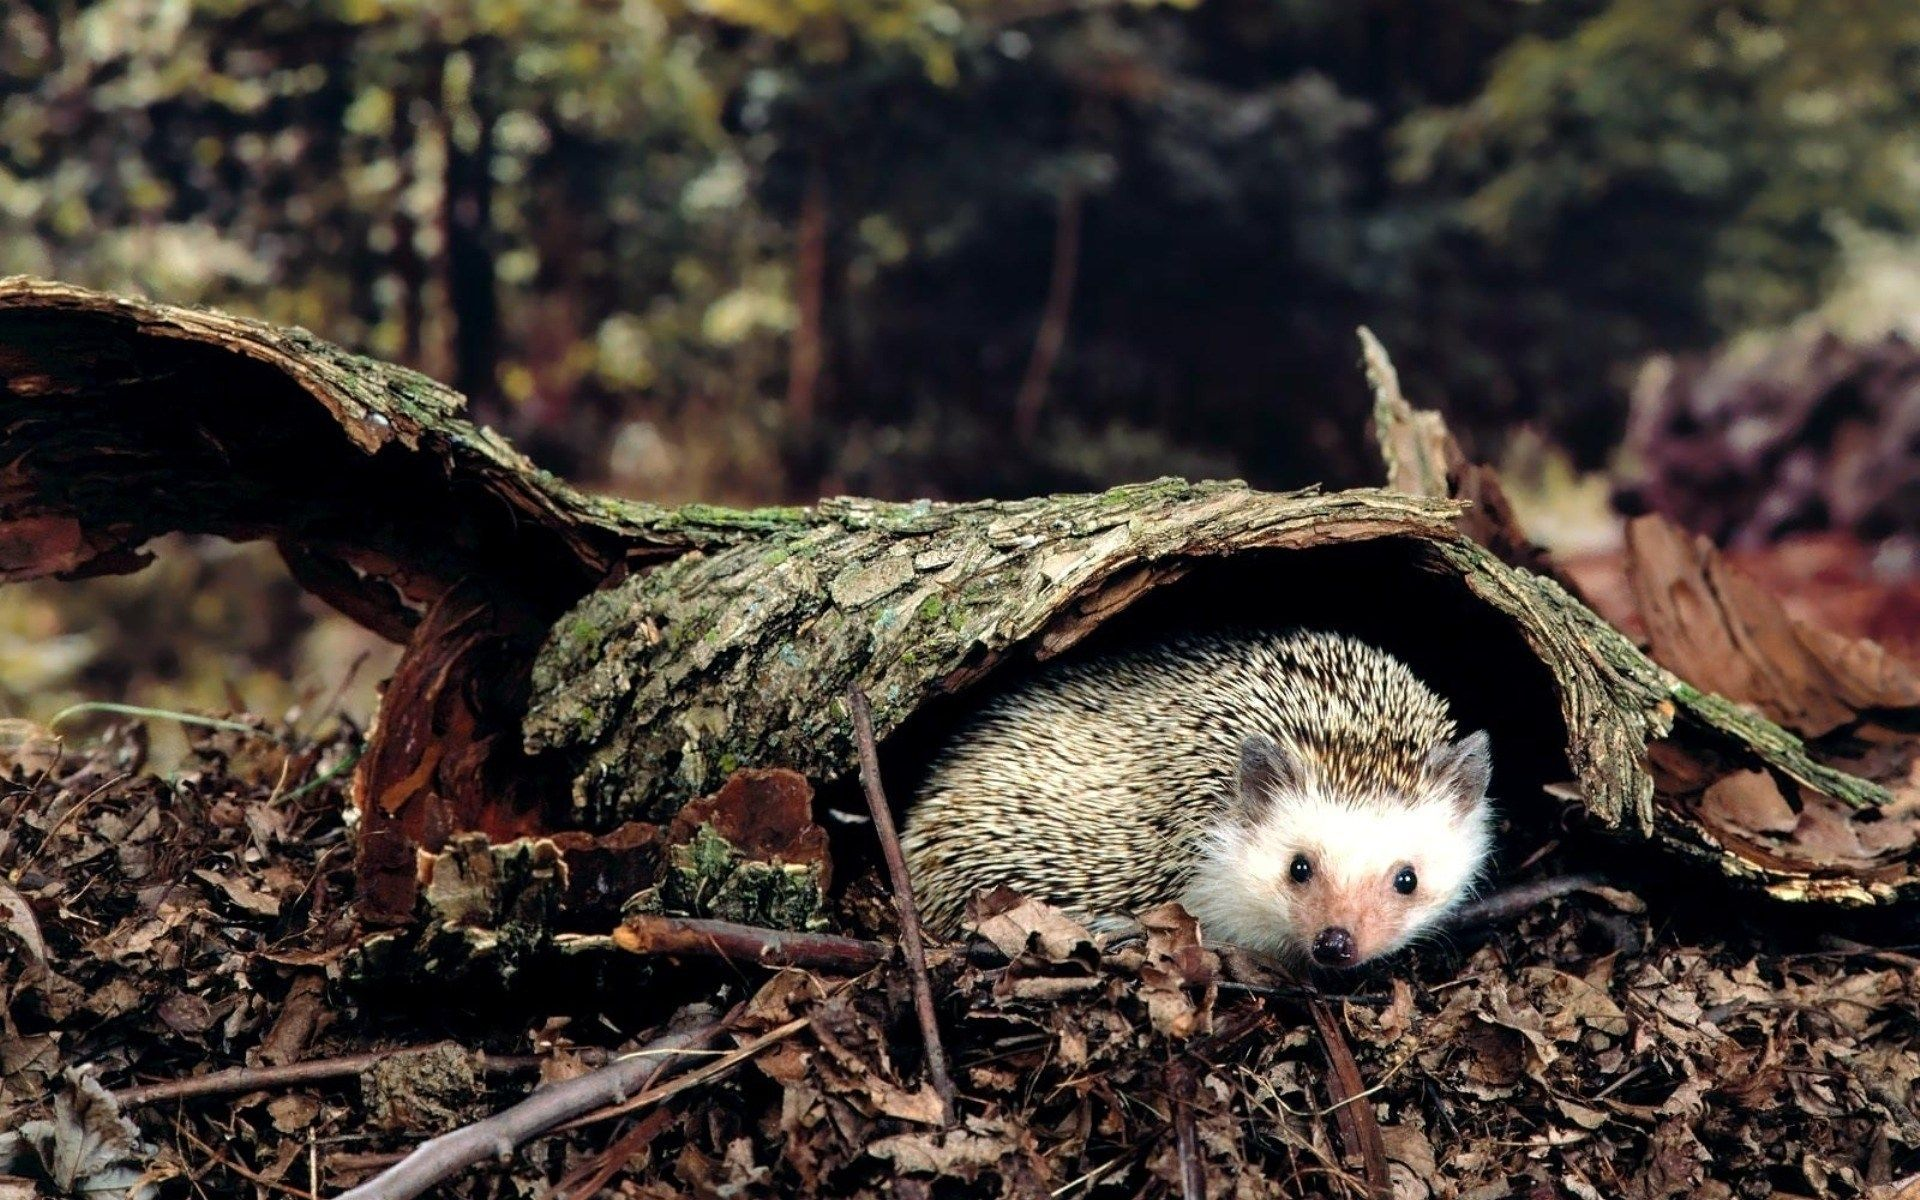 1858365 Hedgehog Category Widescreen Wallpaper Hedgehog Animal Wallpaper Animals Wild Hedgehog